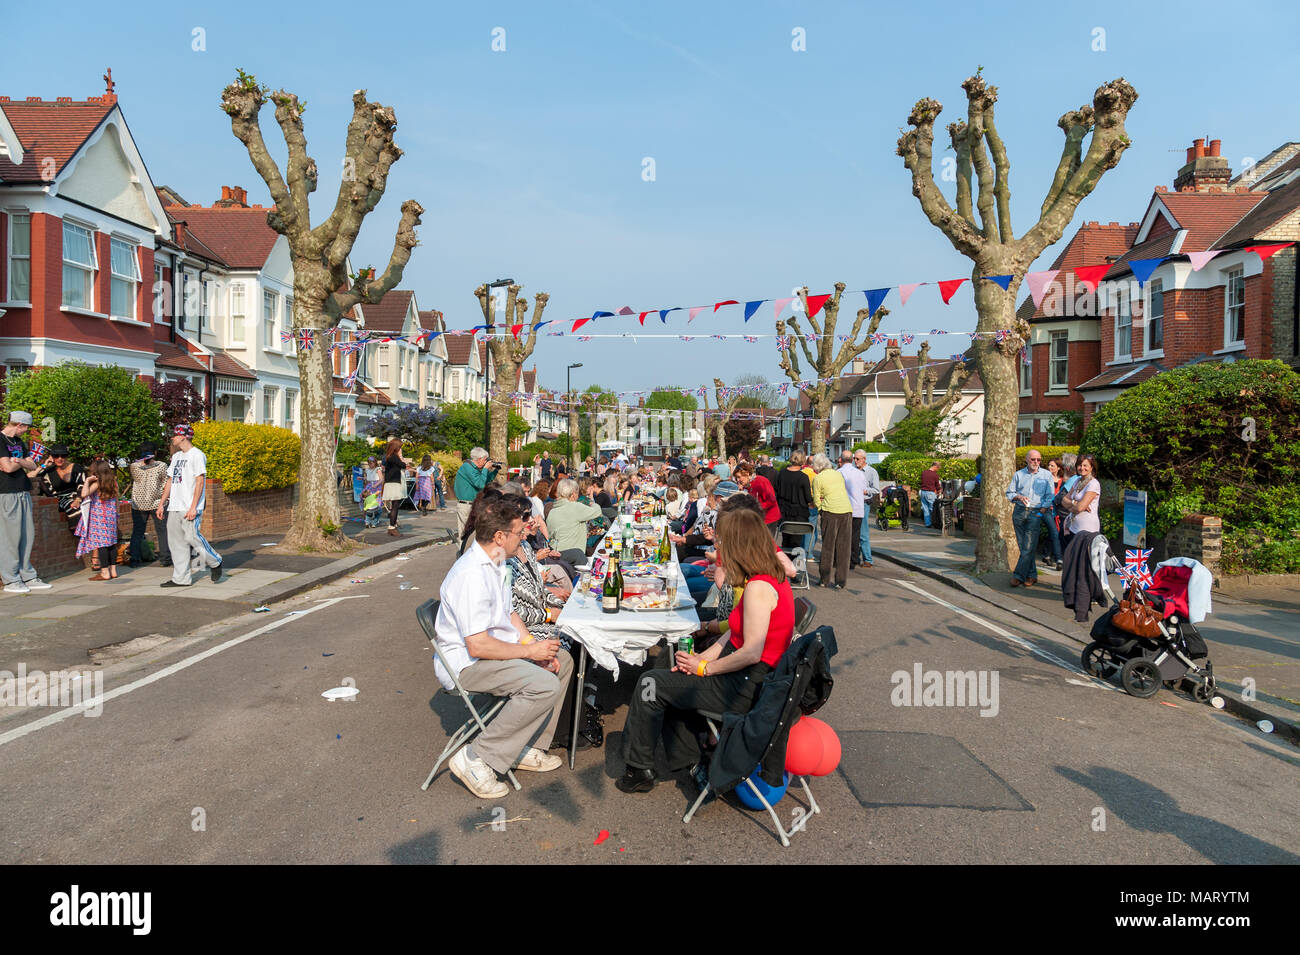 Road closed for neighbourhood street party during national bank holiday in Hornsey, North London, UK - Stock Image